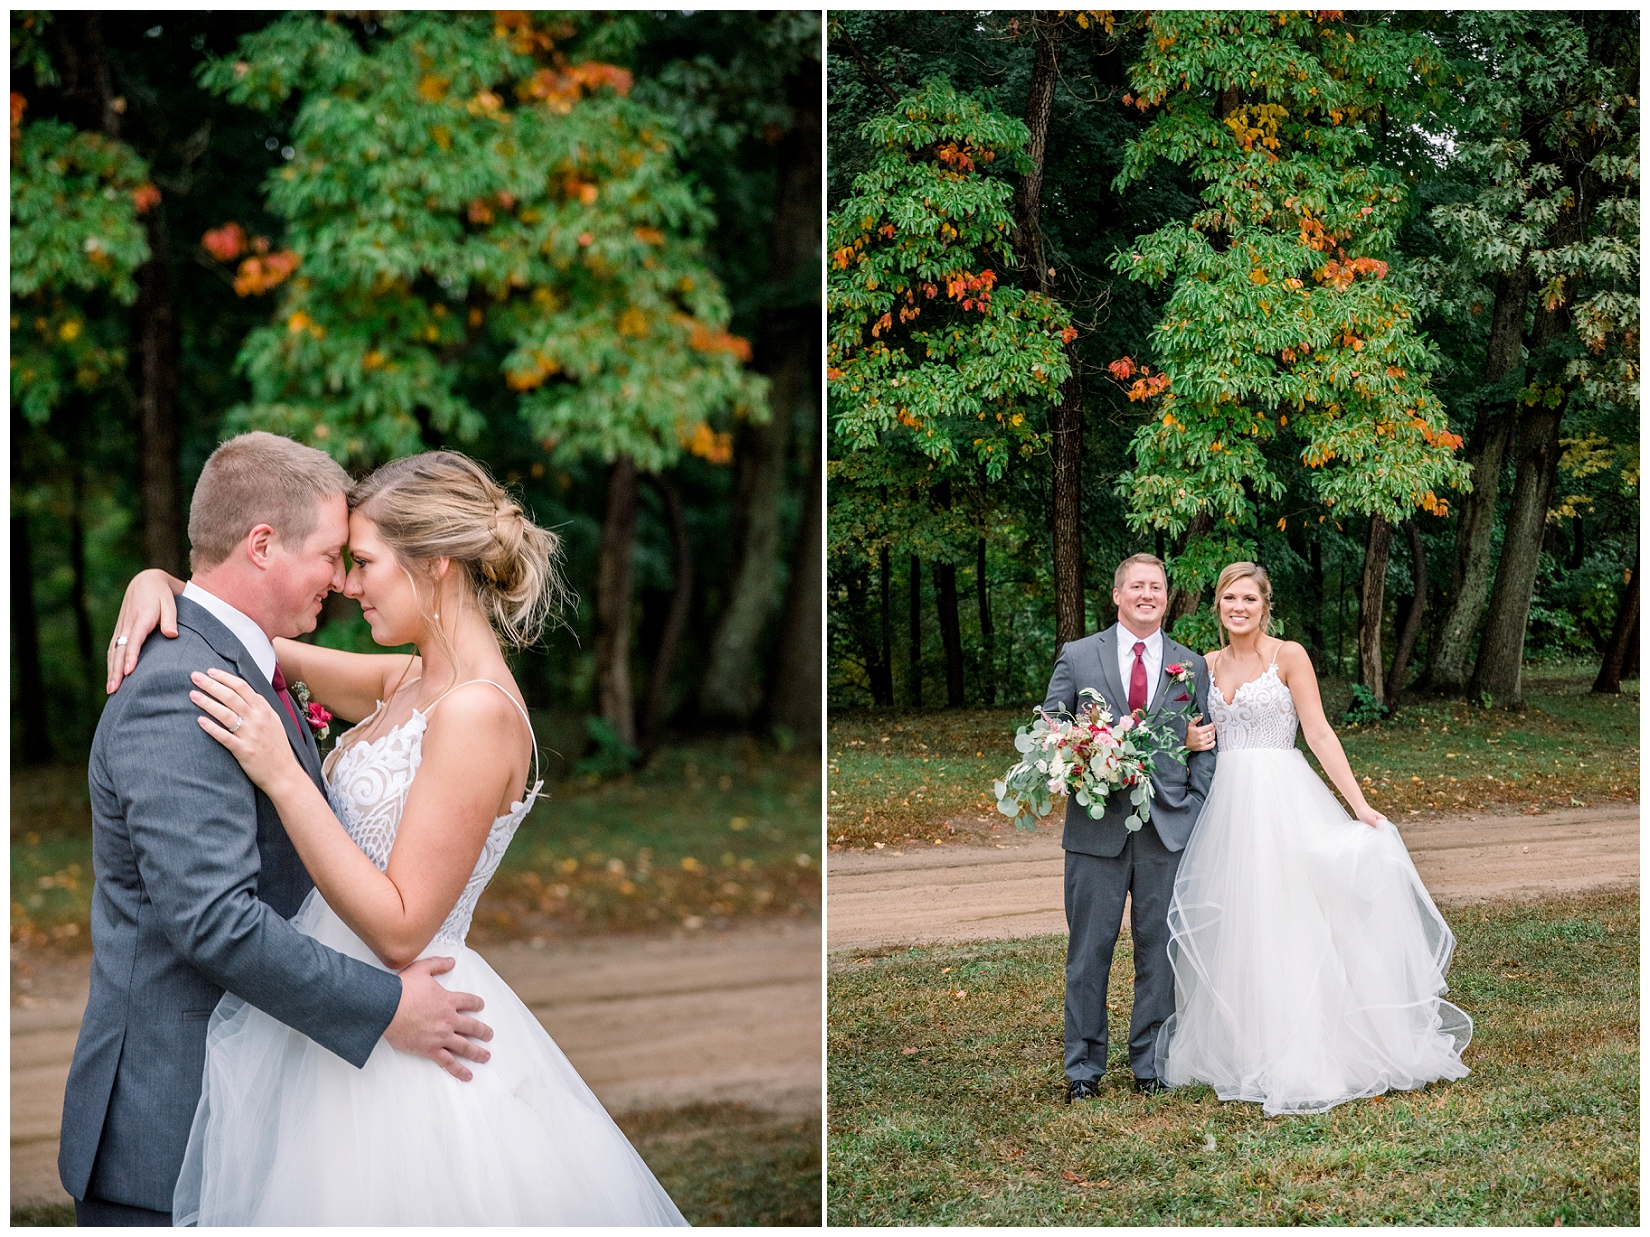 cat-alkire-wedding-photographer-indiana-chicago-indianapolis-fort-wayne_0714.jpg